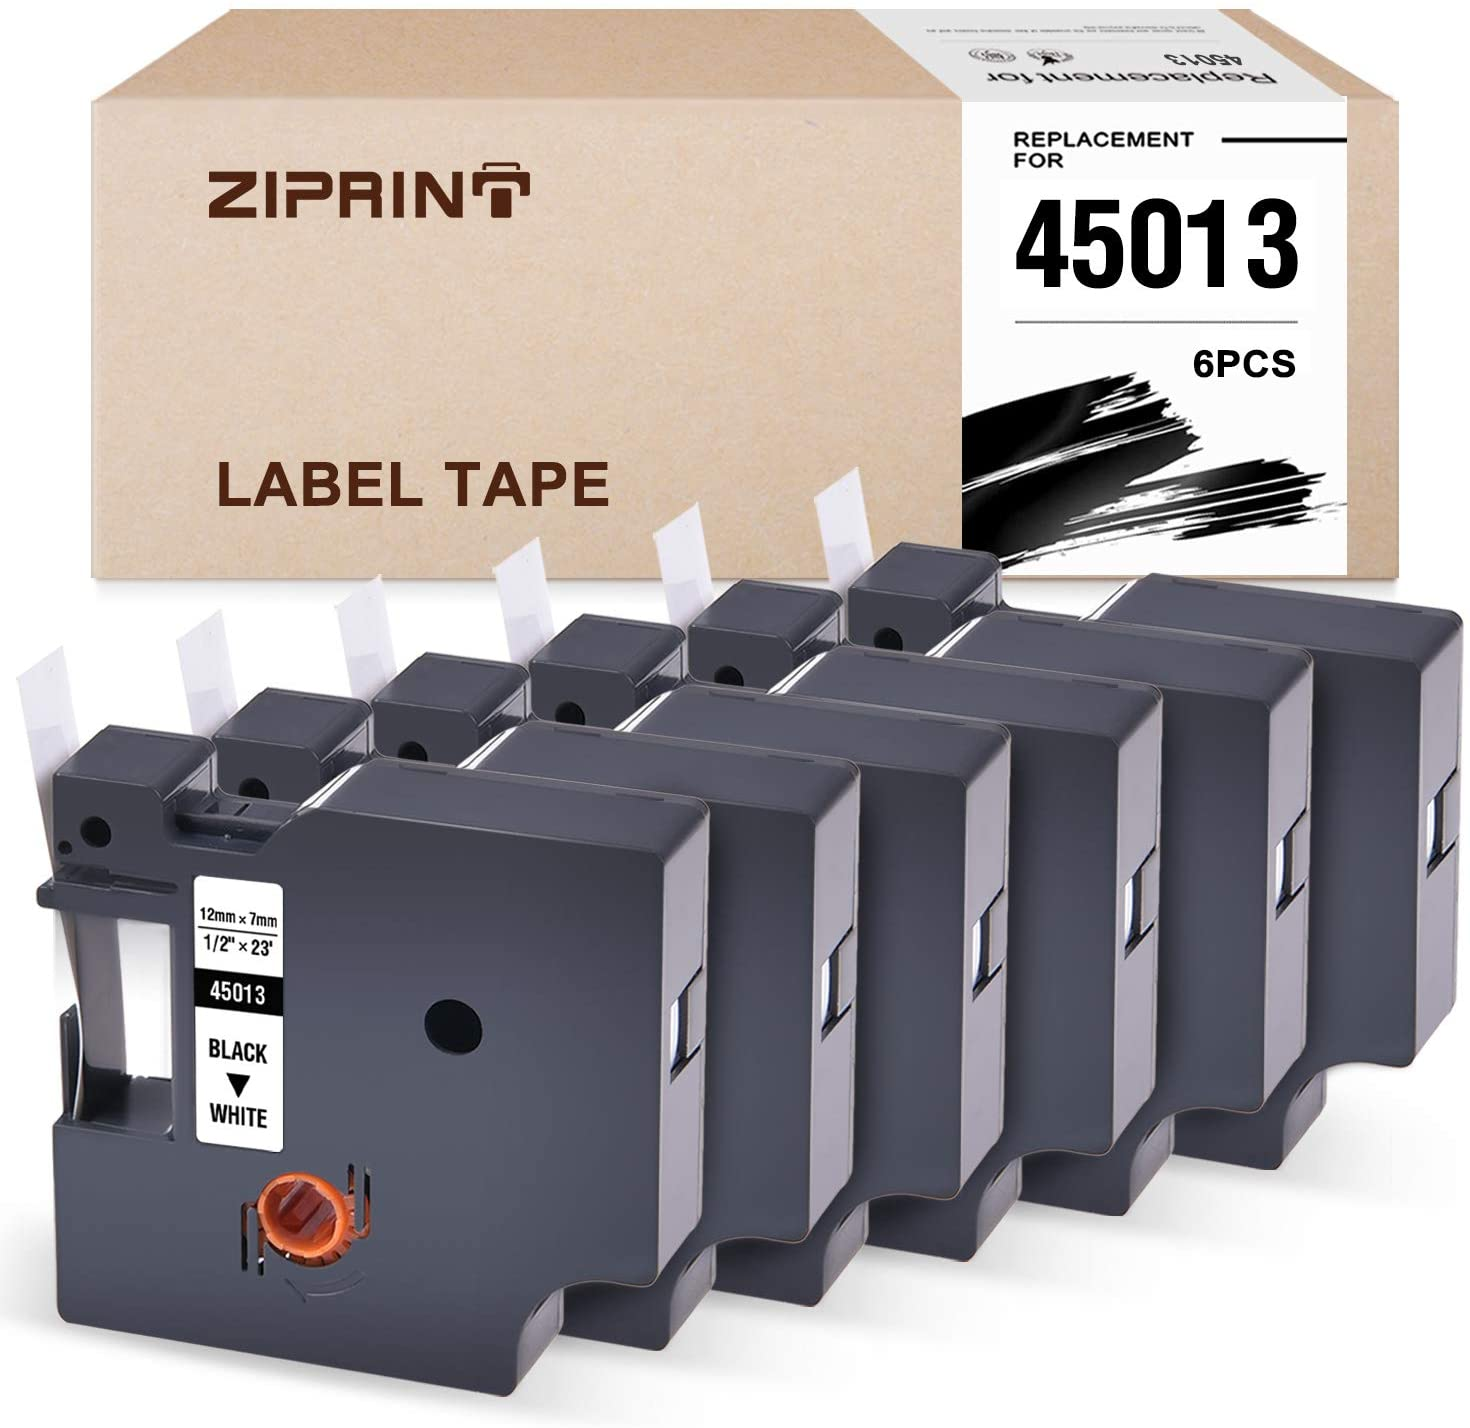 ZIPRINT 6-Pack Compatible Label Tape Replacement for Dymo D1 45013 (S0720530) Standard Tape Use for DYMO LabelManager 280 160 PnP LabelWriter 450 Duo Label Makers Black on White 1/2 Inch x 23 Feet